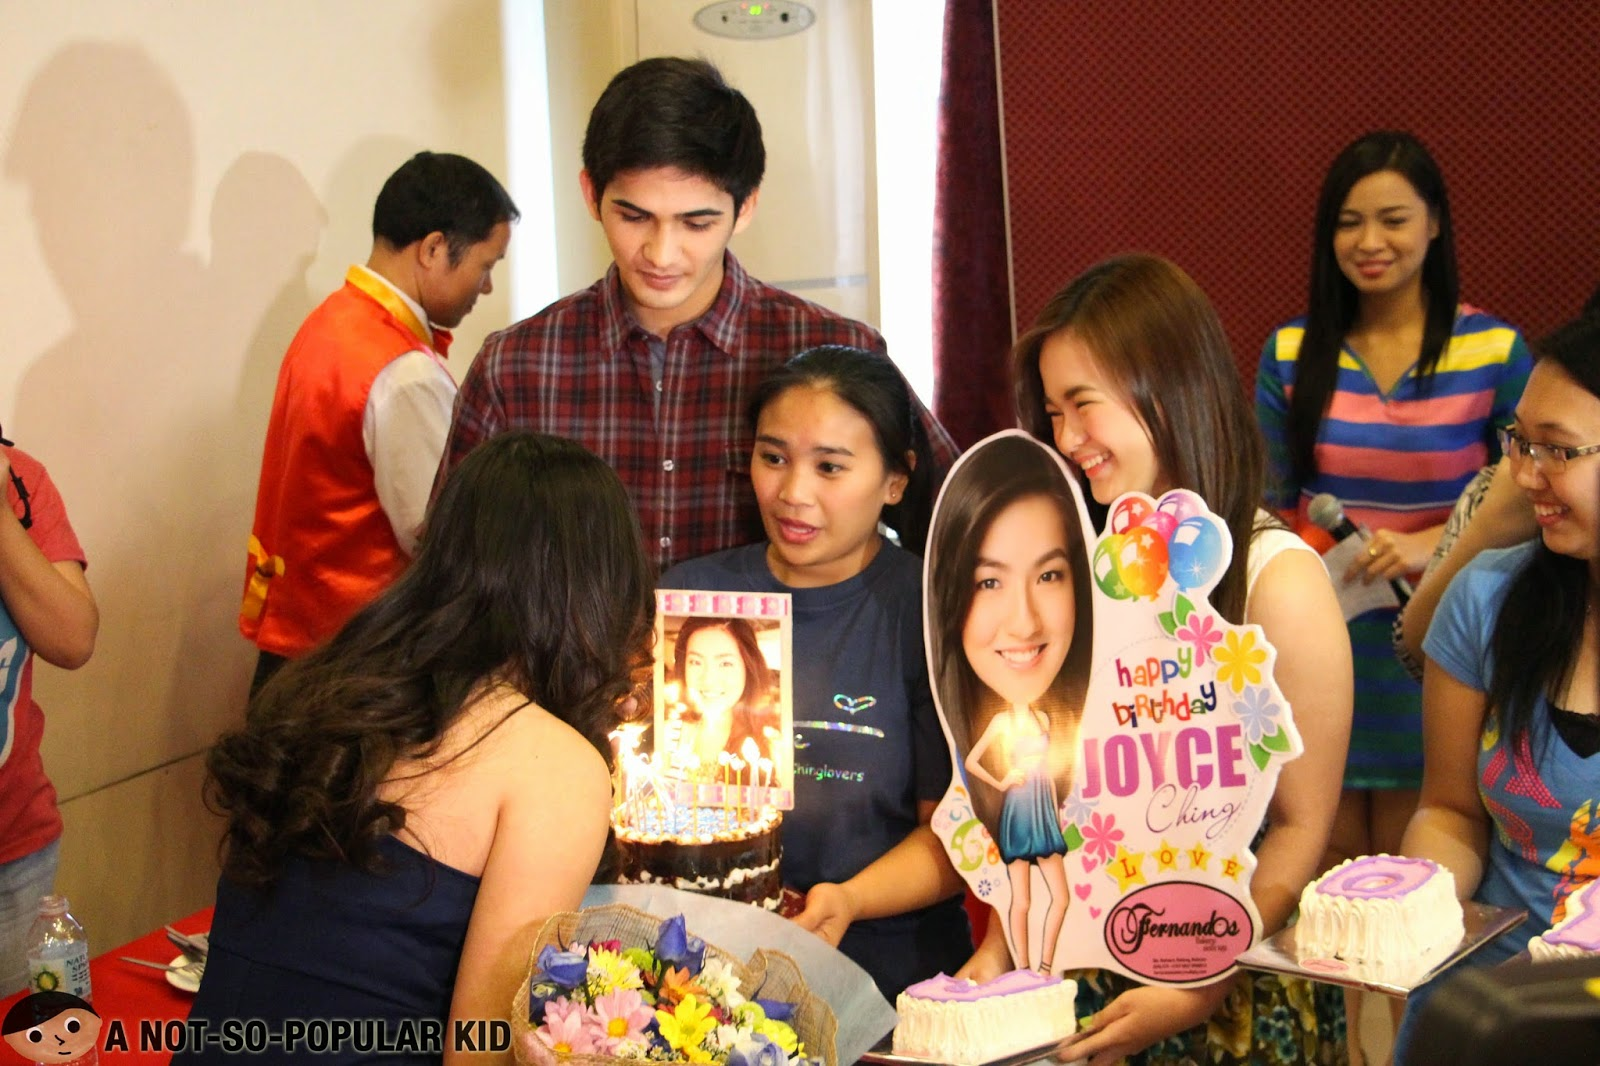 Joyce Ching blowing the candles for her birthday surprise (with Krystal Reyes and Phytos Ramirez)